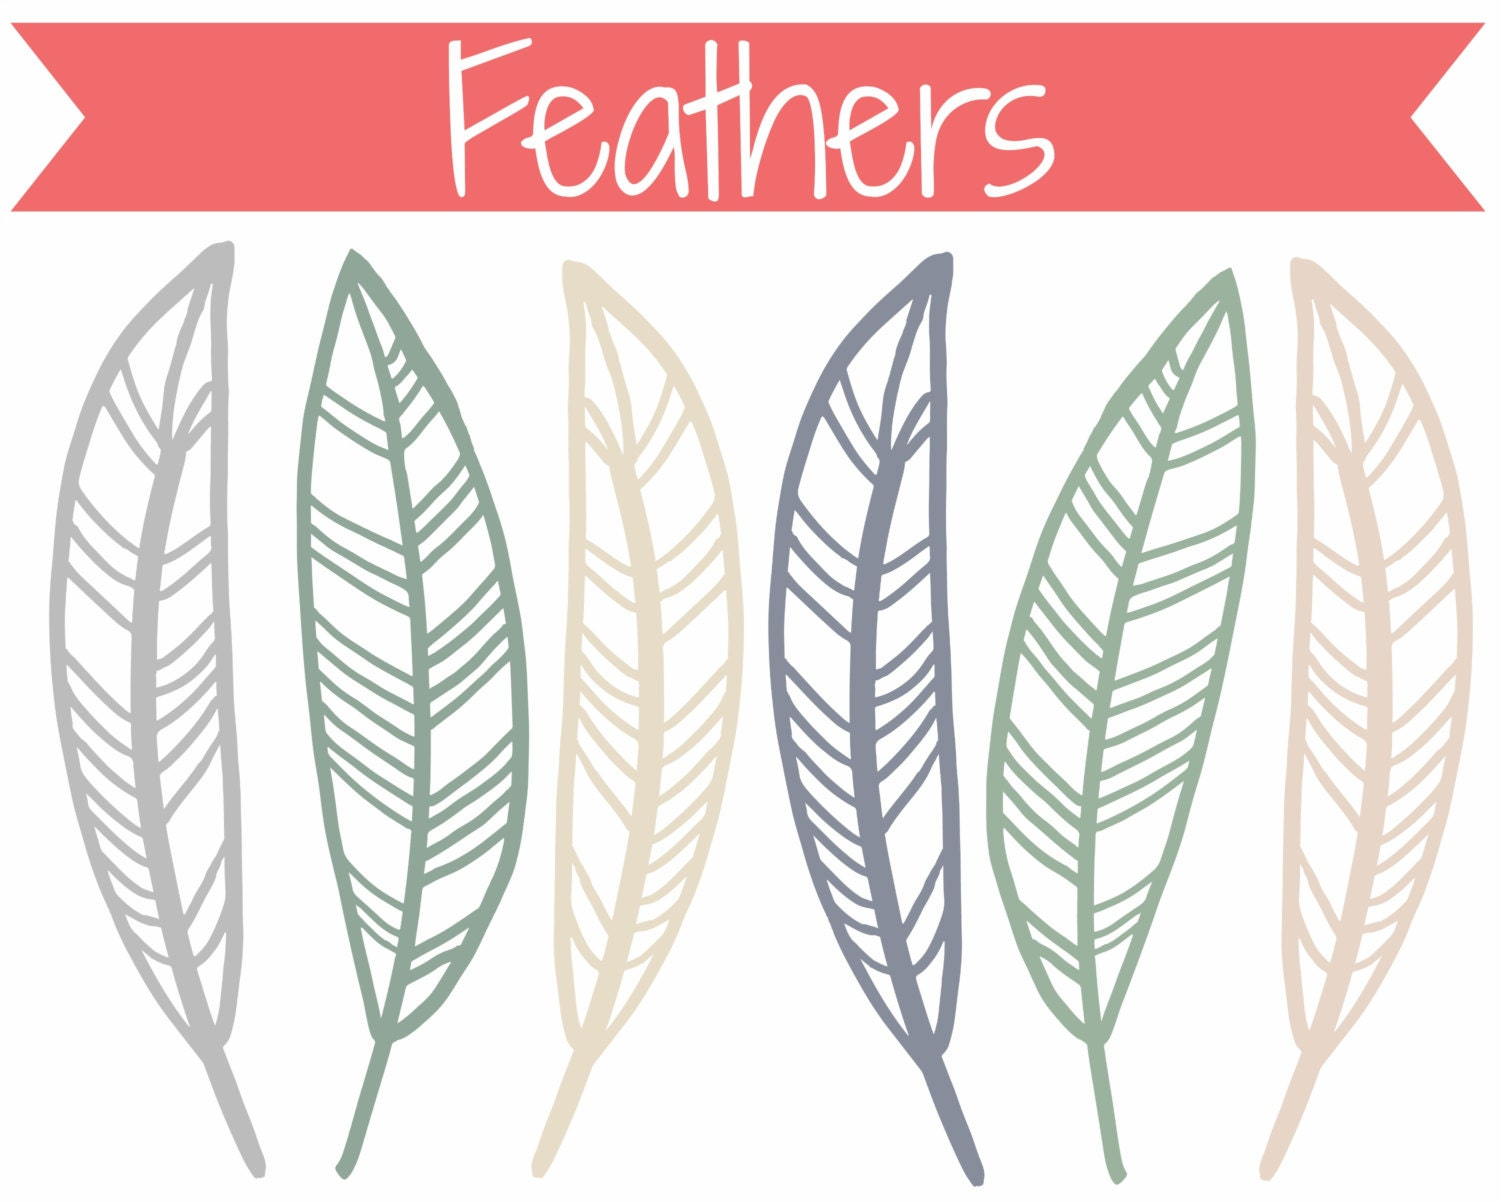 Feather Outline Clip Art Doodle feathers clip art